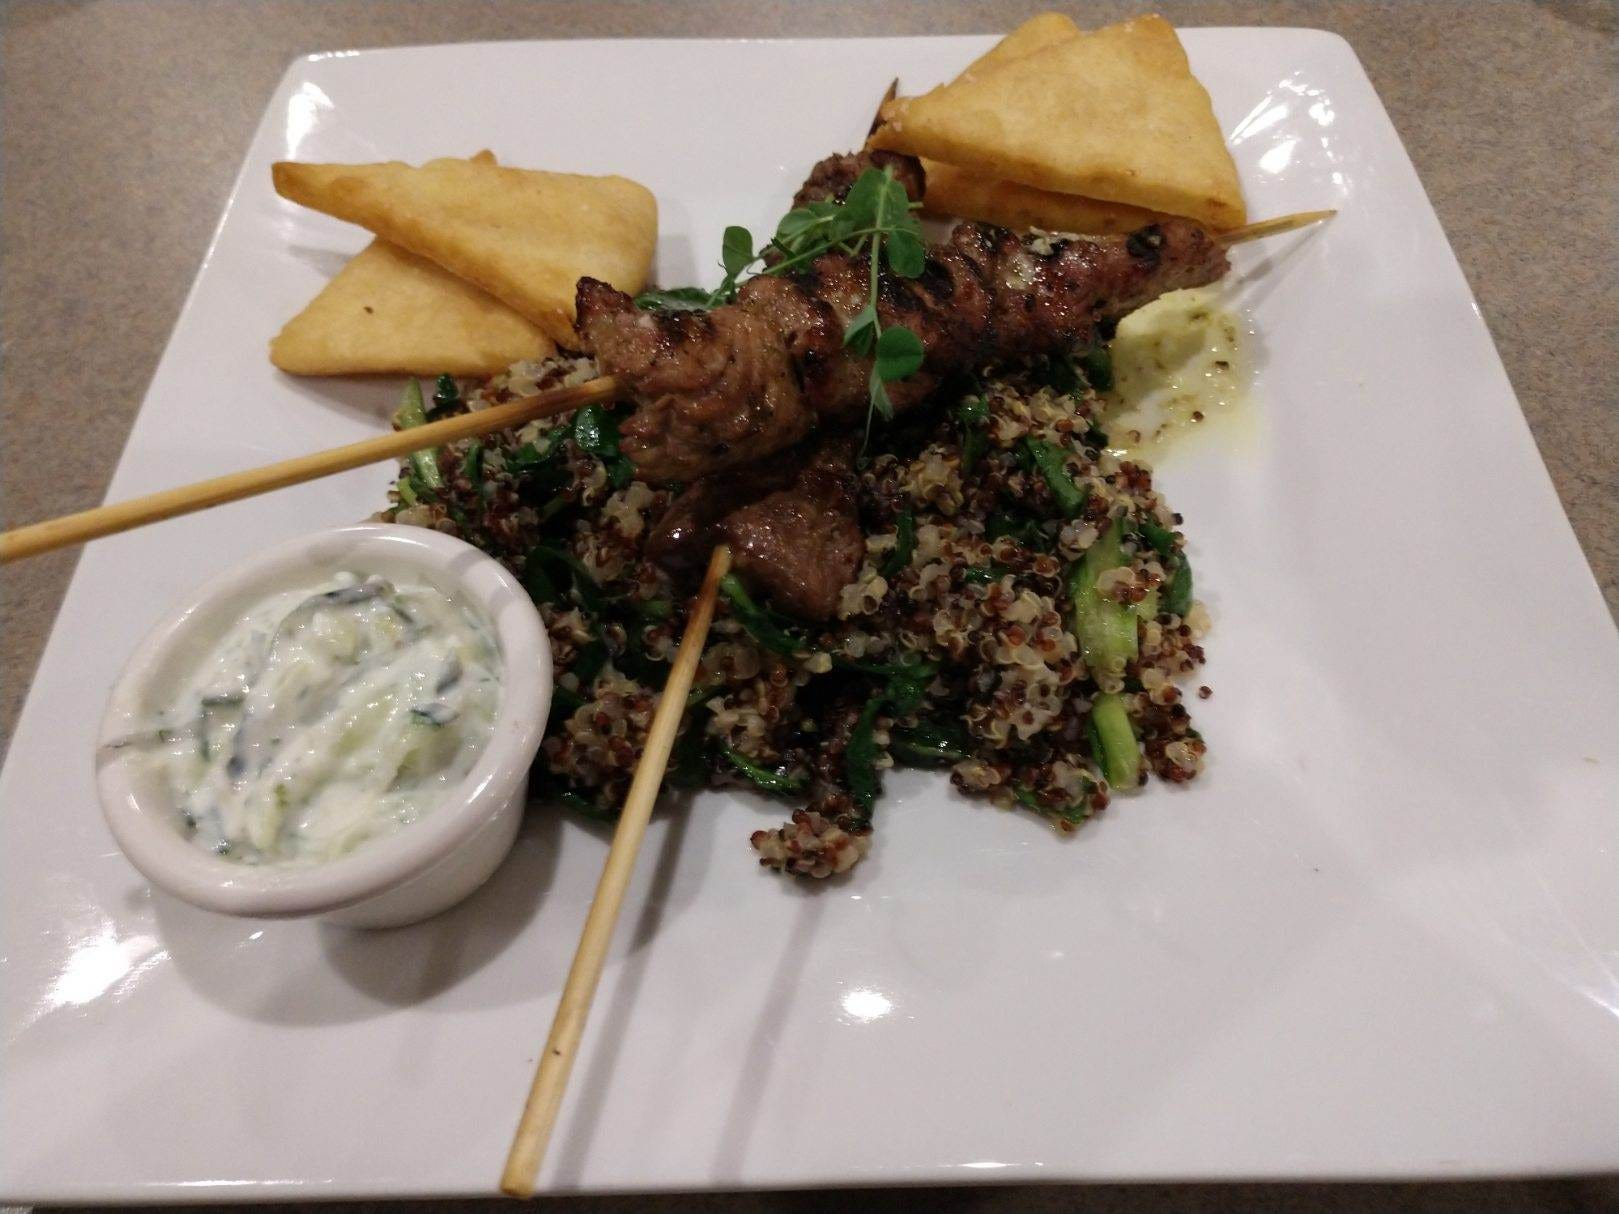 The souvlaki from Holla in Manitowoc is a Greek-style dish that features grilled lamb on skewers and served on a bed of quinoa, shallots and spinach along with pita chips and a house-made Tzatziki sauce.